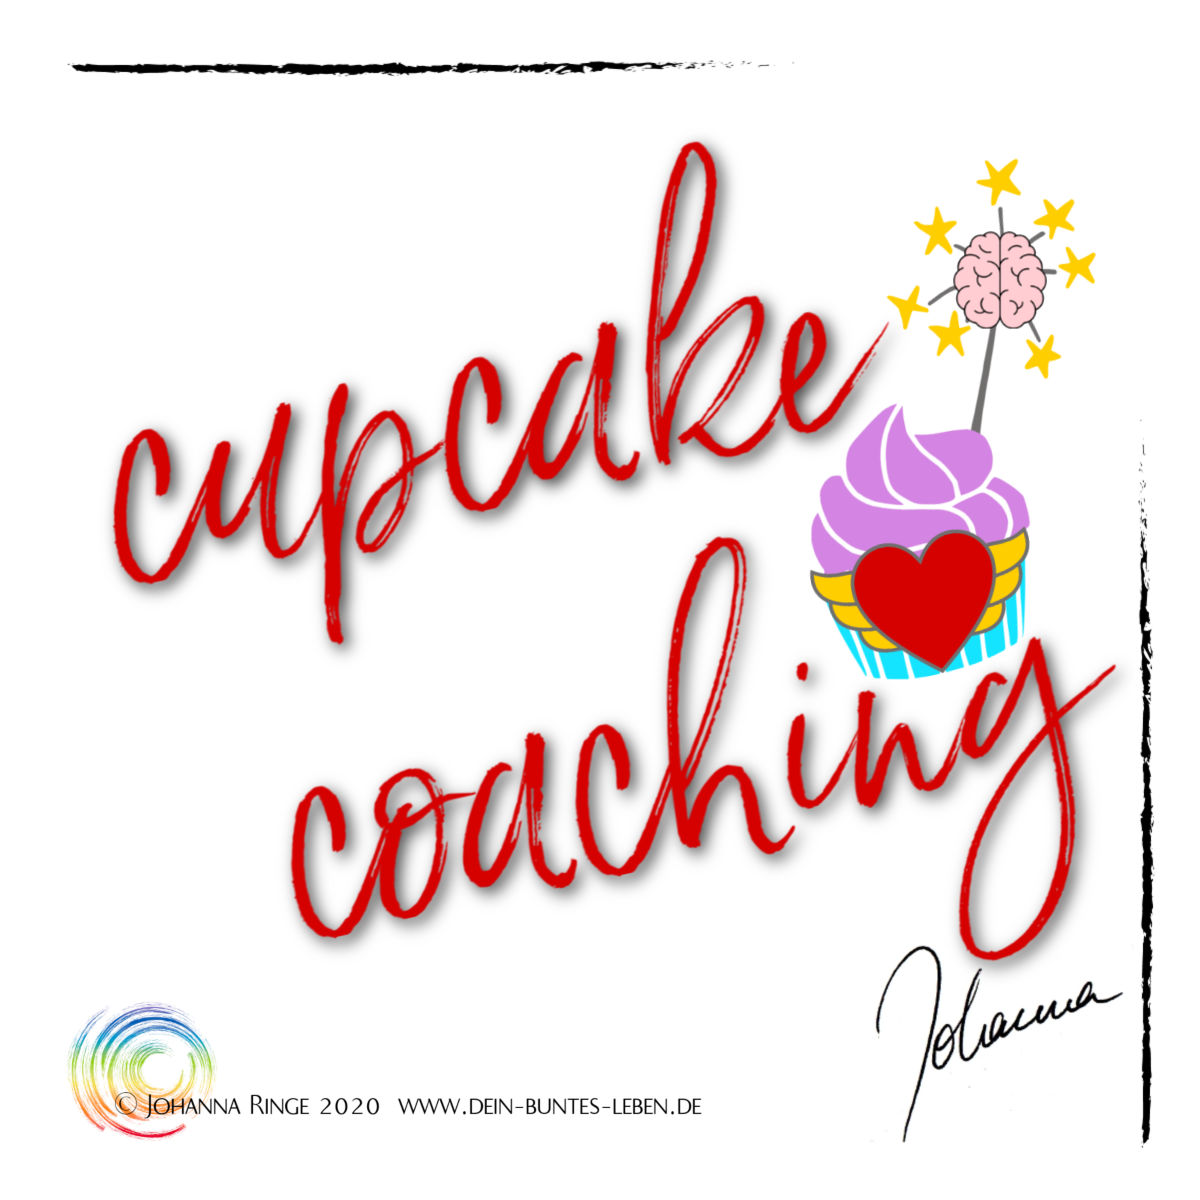 Cupcake Coaching with Johanna Ringe, a work with heart and brain! ©2020 Johanna Ringe www.dein-buntes-leben.de